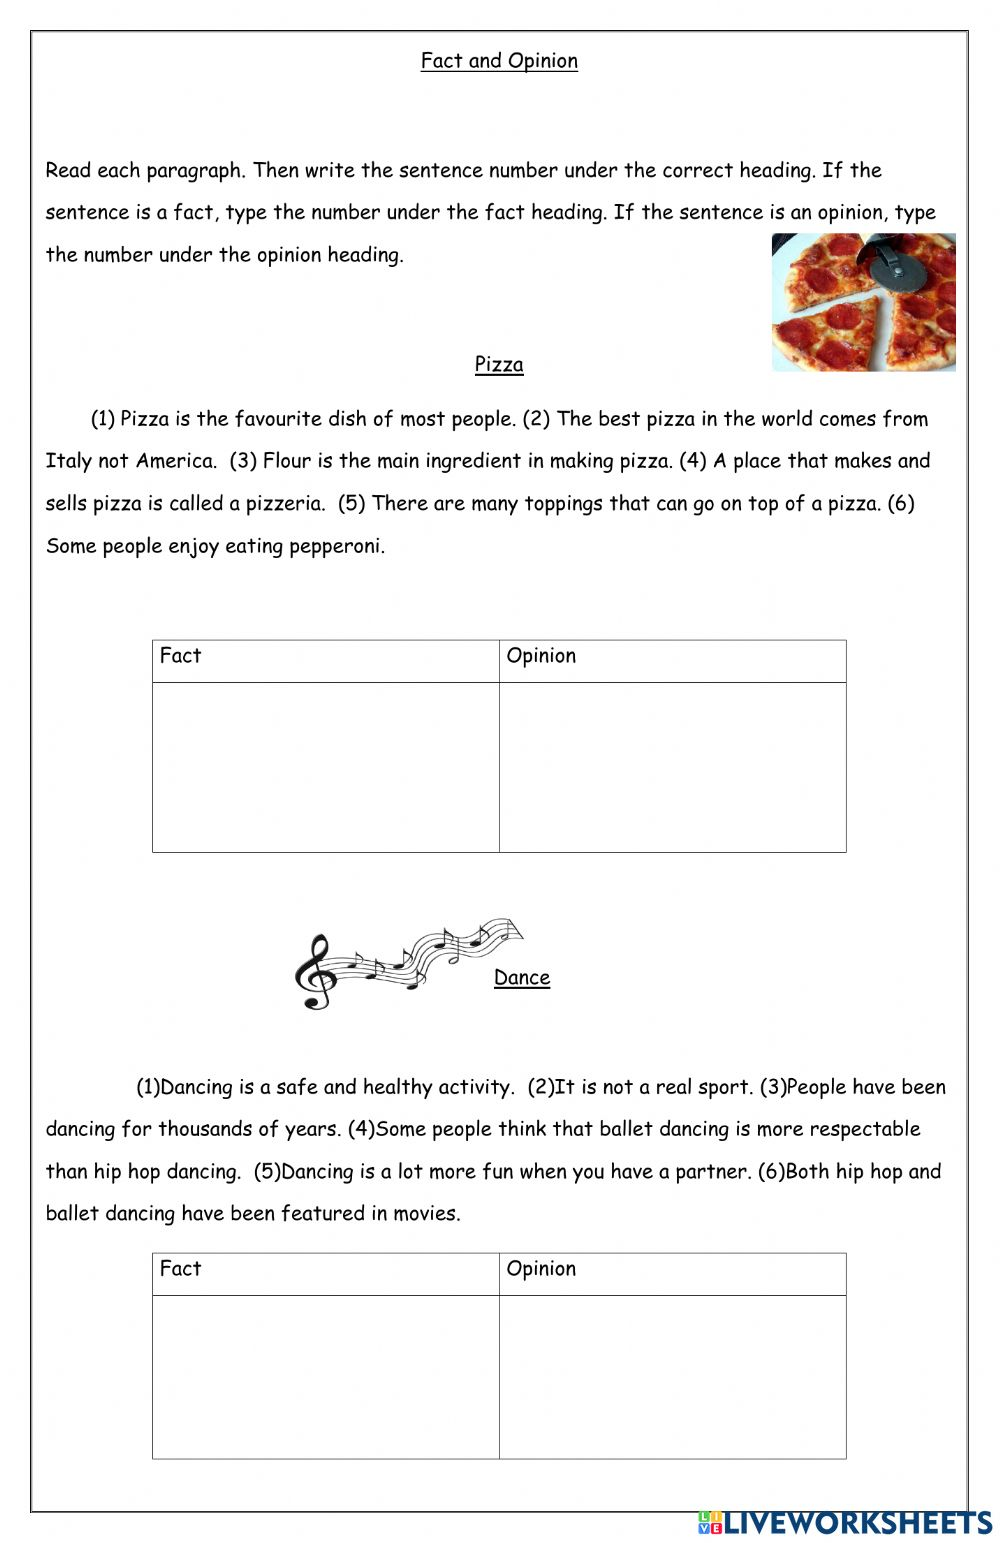 medium resolution of Fact and Opinion zsciencez worksheet